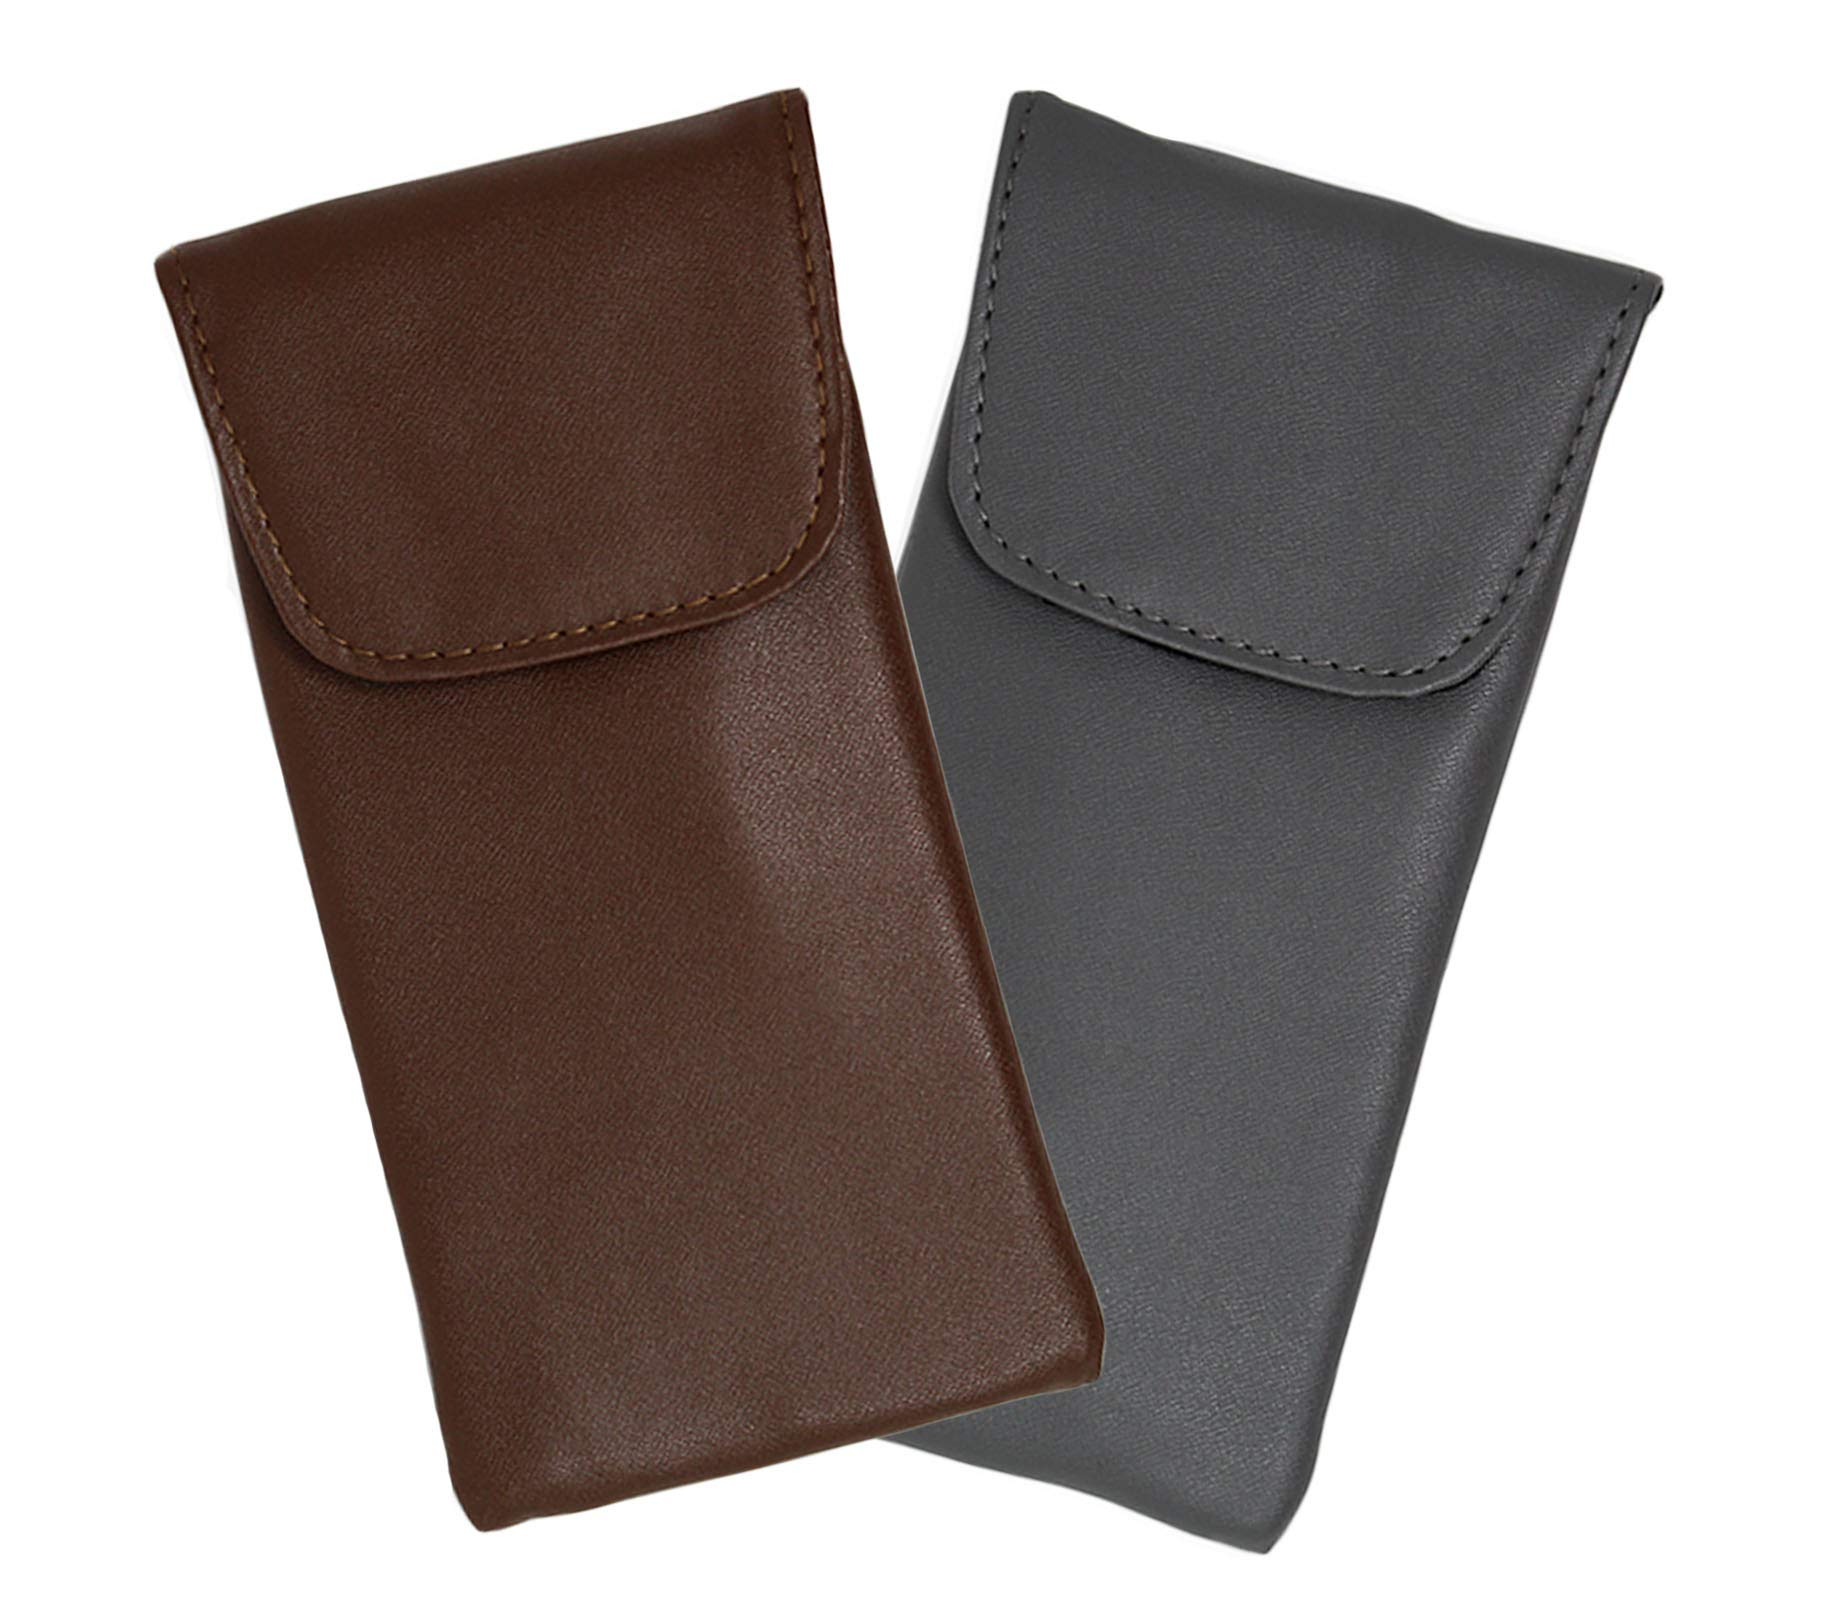 2 Pack Eyeglass Case Top Closure, Slip In Eyeglass Case Soft Faux Leather For Large Glasses, Men by Ron's Optical